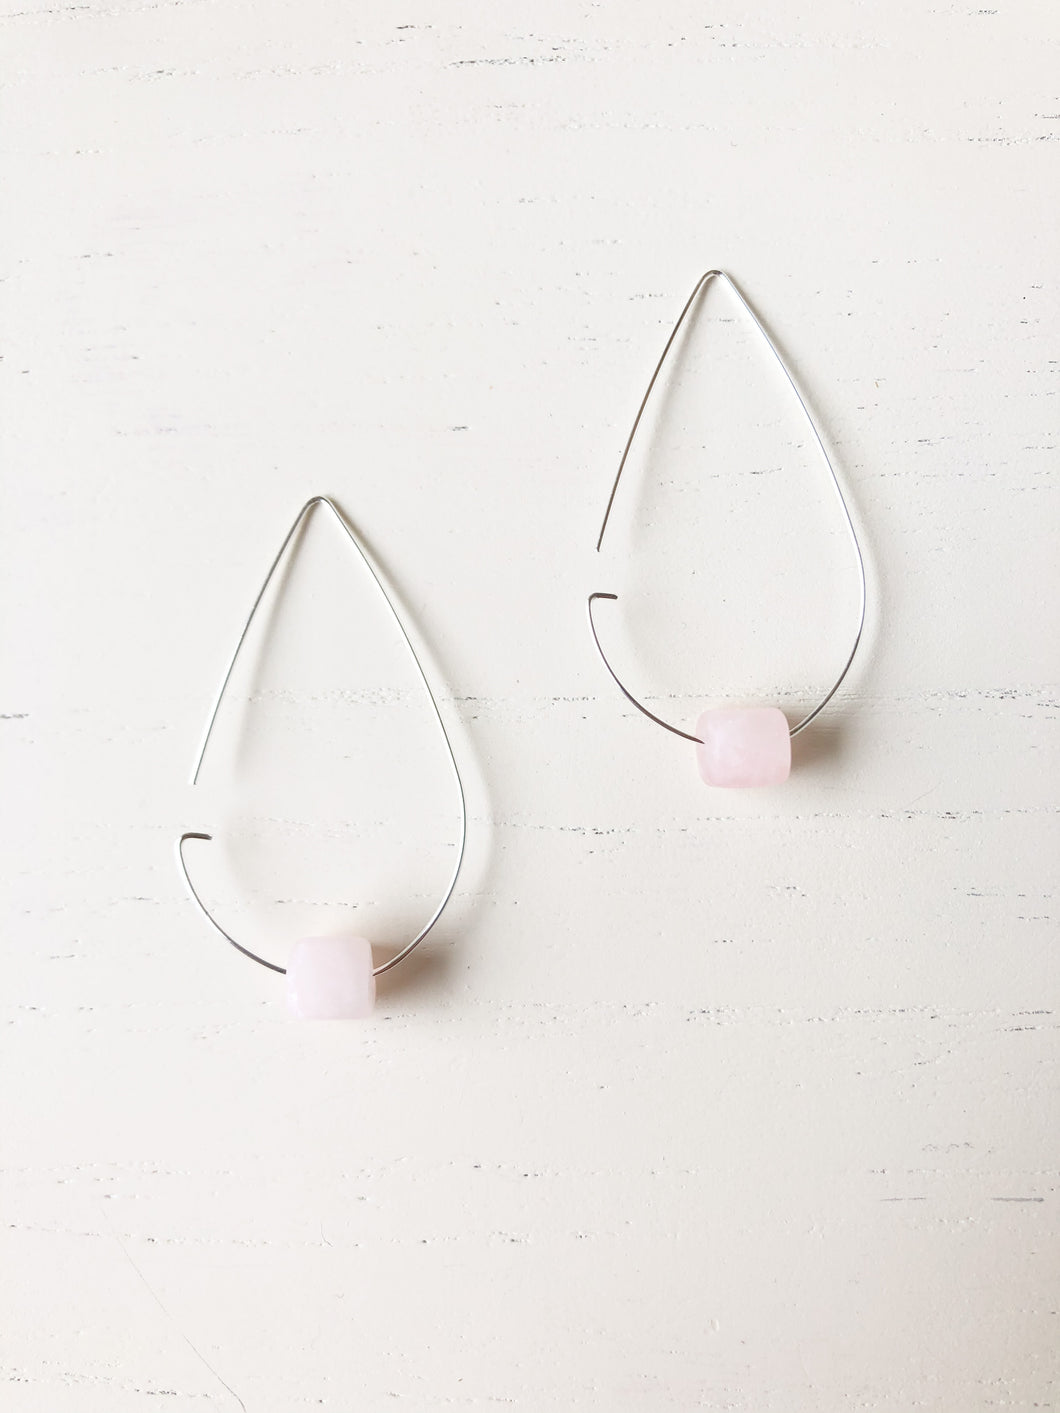 Brass Tear Drop Threader Earrings - Rose Quartz - Silver